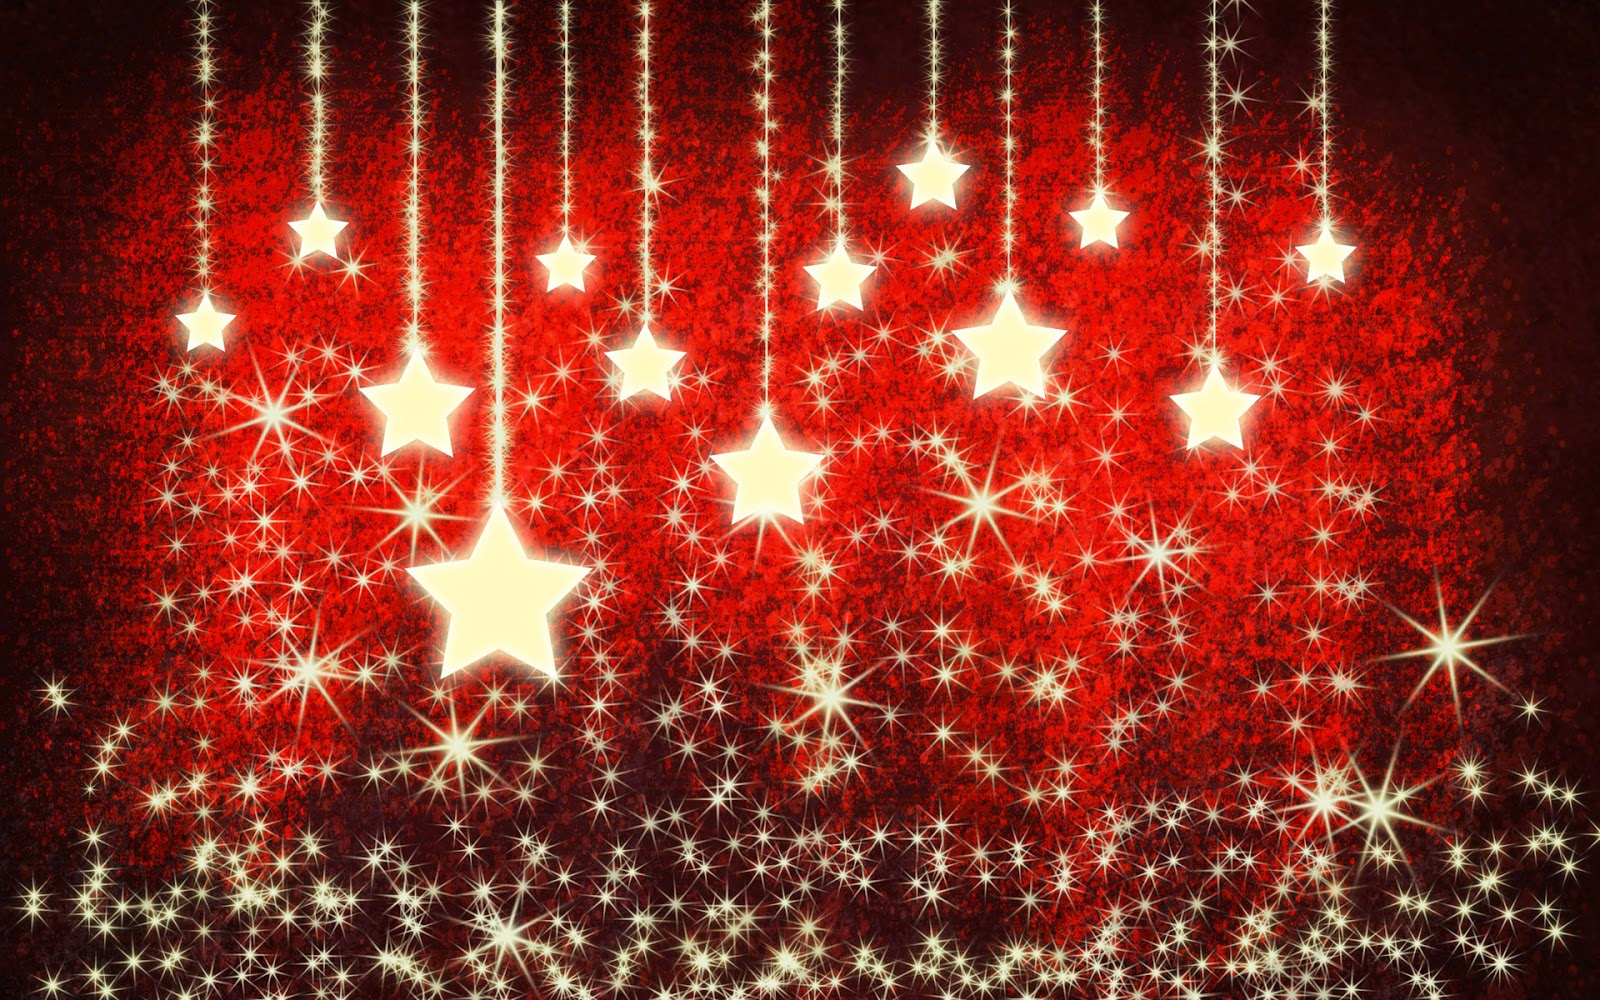 have yourself a merry little christmas now - Have Yourself A Merry Little Christmas